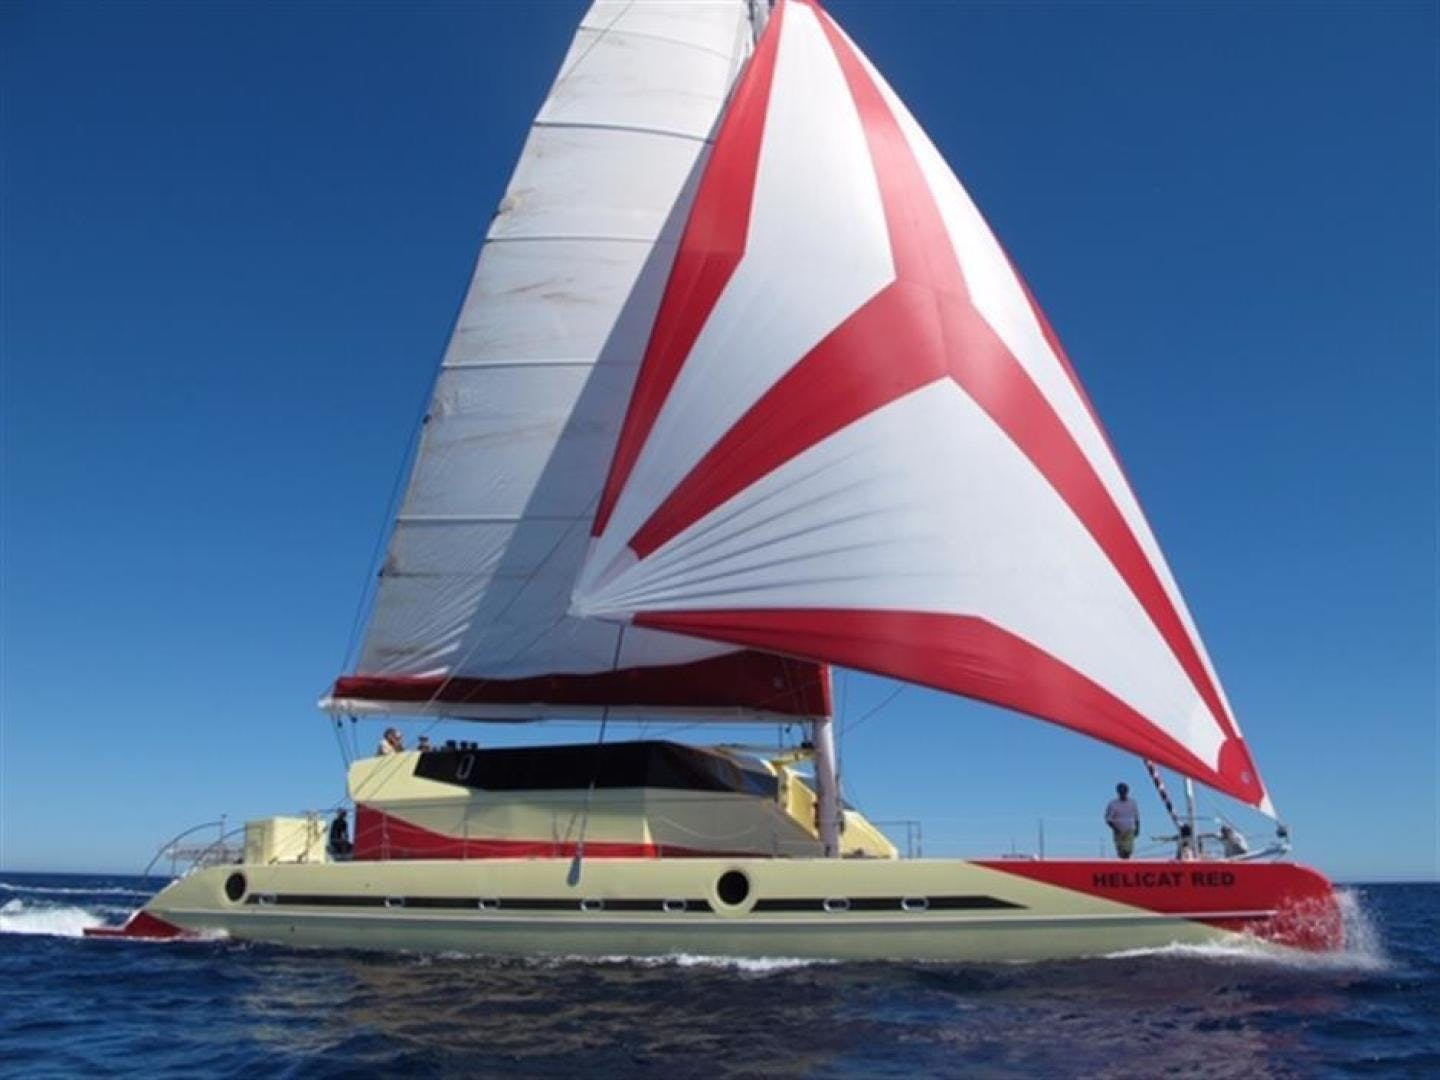 2010 Fountaine Pajot 77' Catamaran Helicat Red | Picture 3 of 48